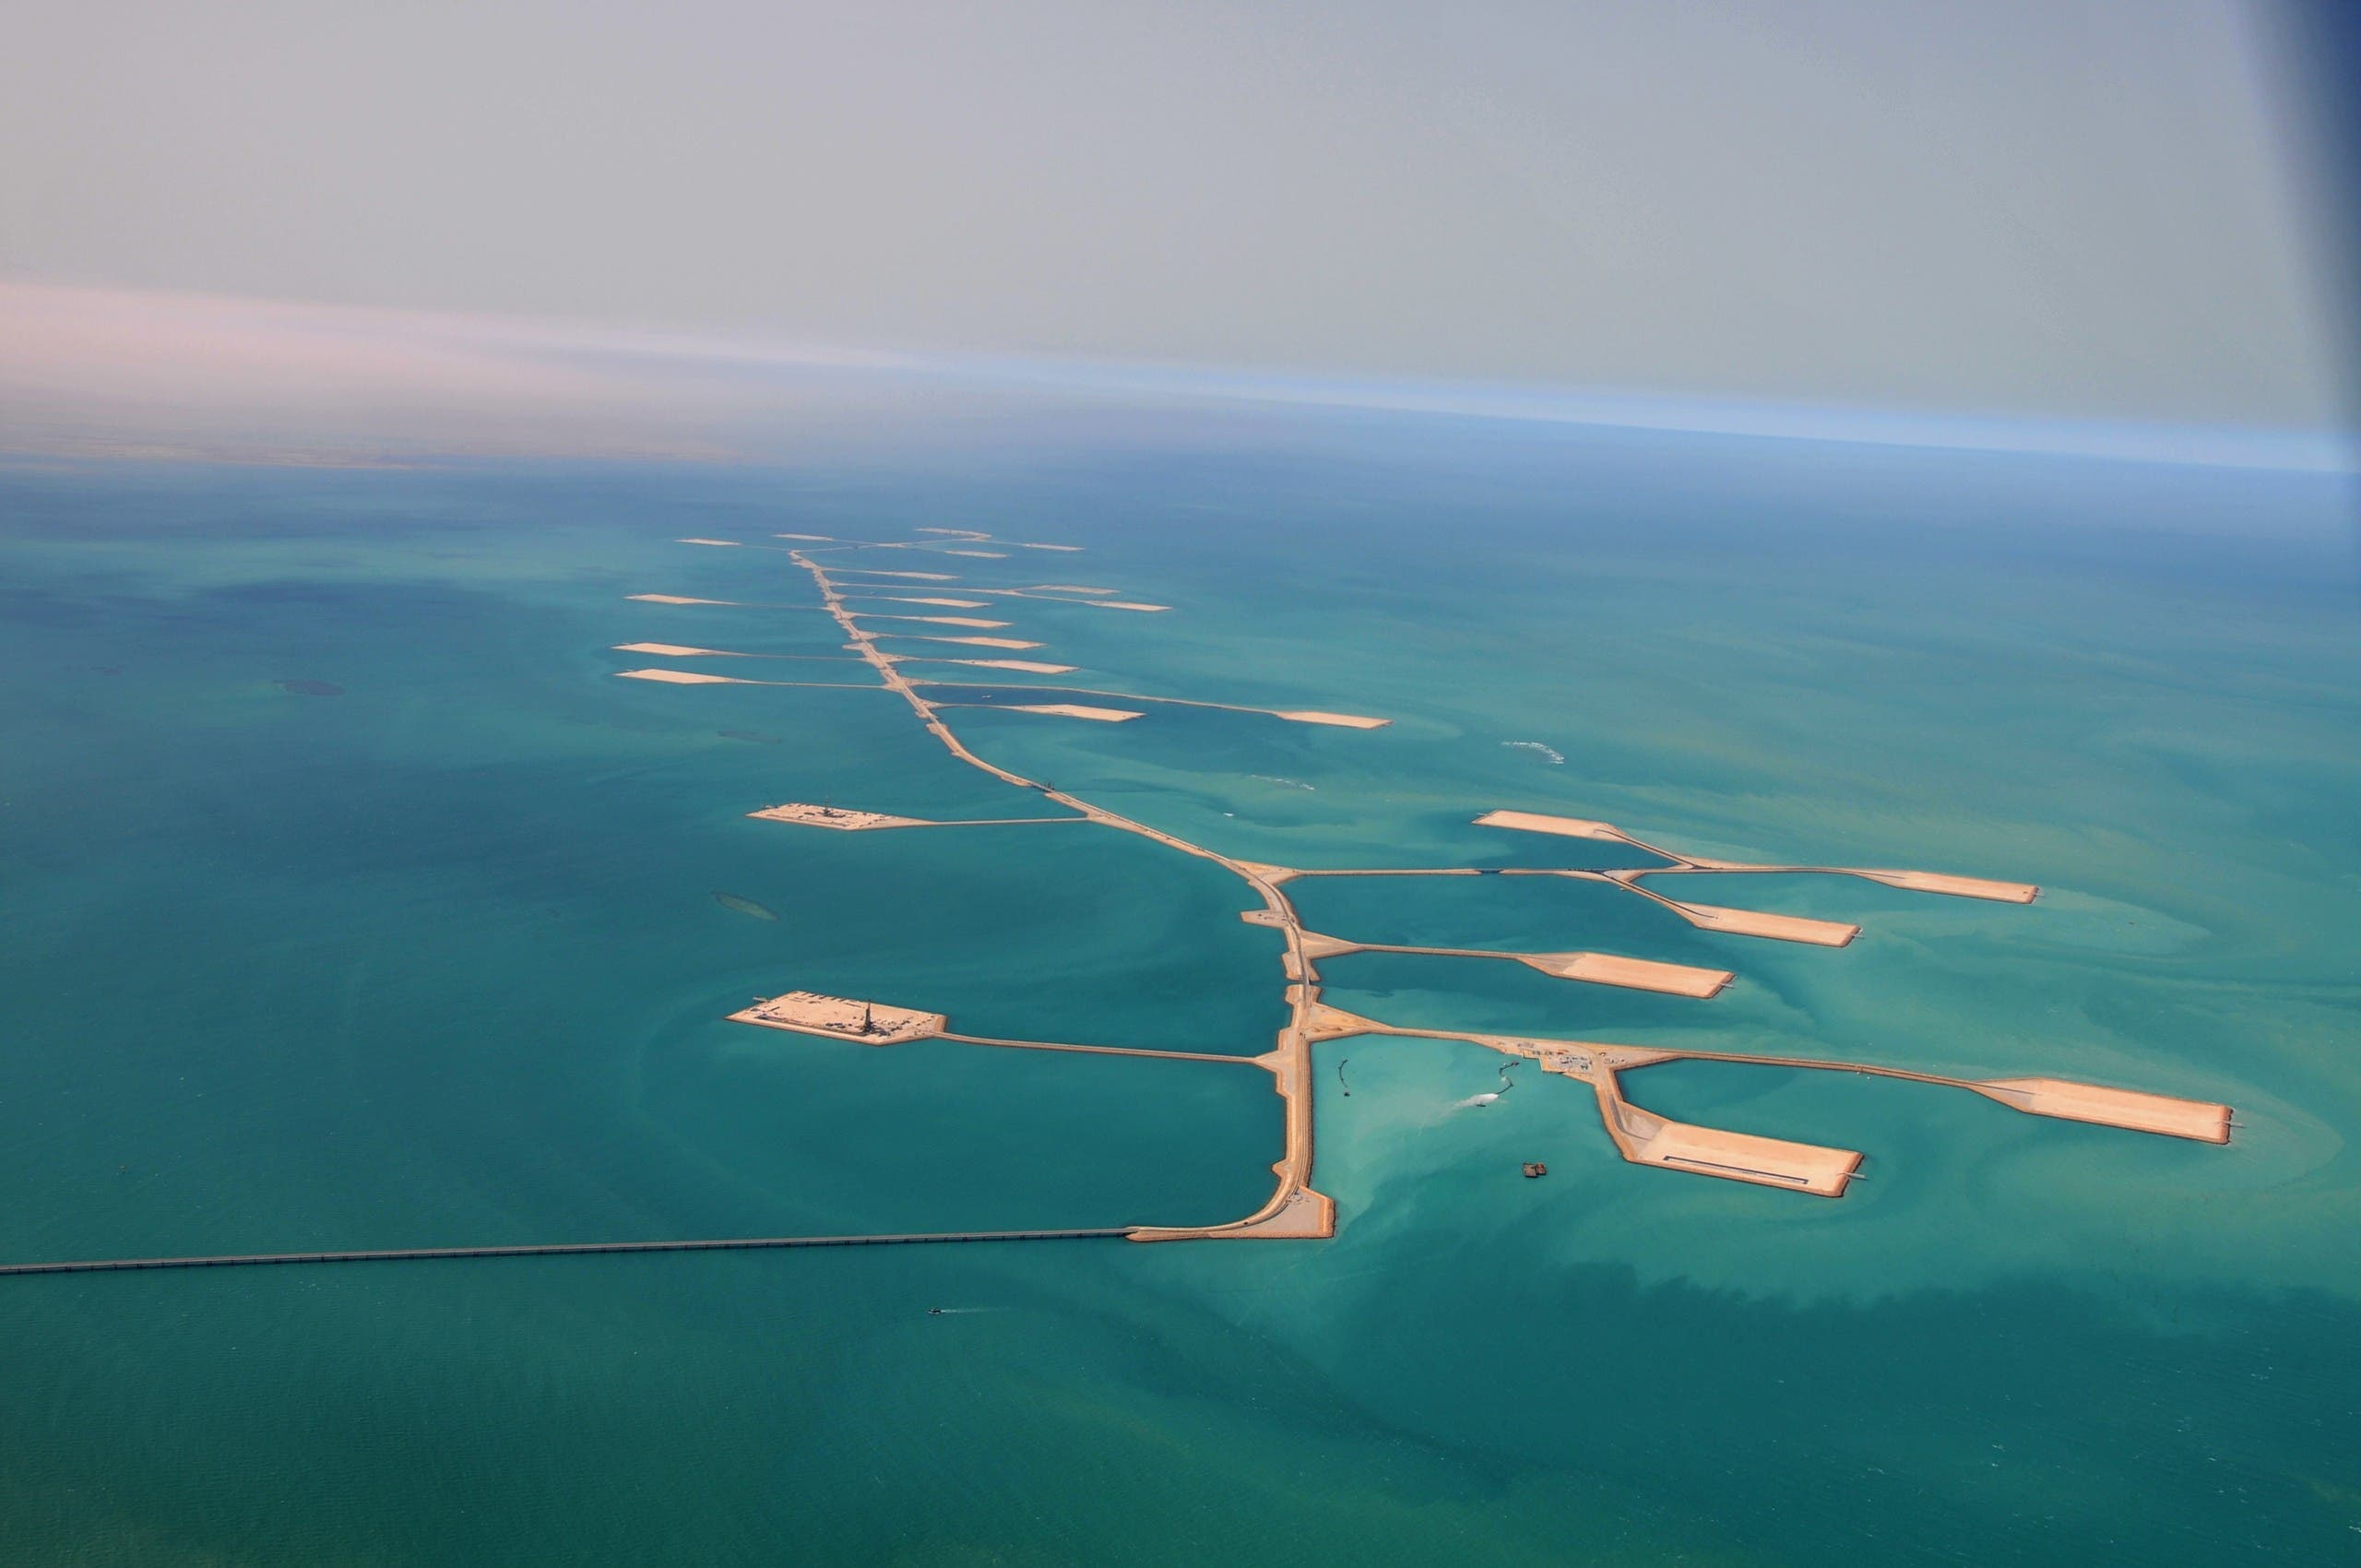 Saudi Aramco's Manifa field and biodiversity protection area. (Supplied)